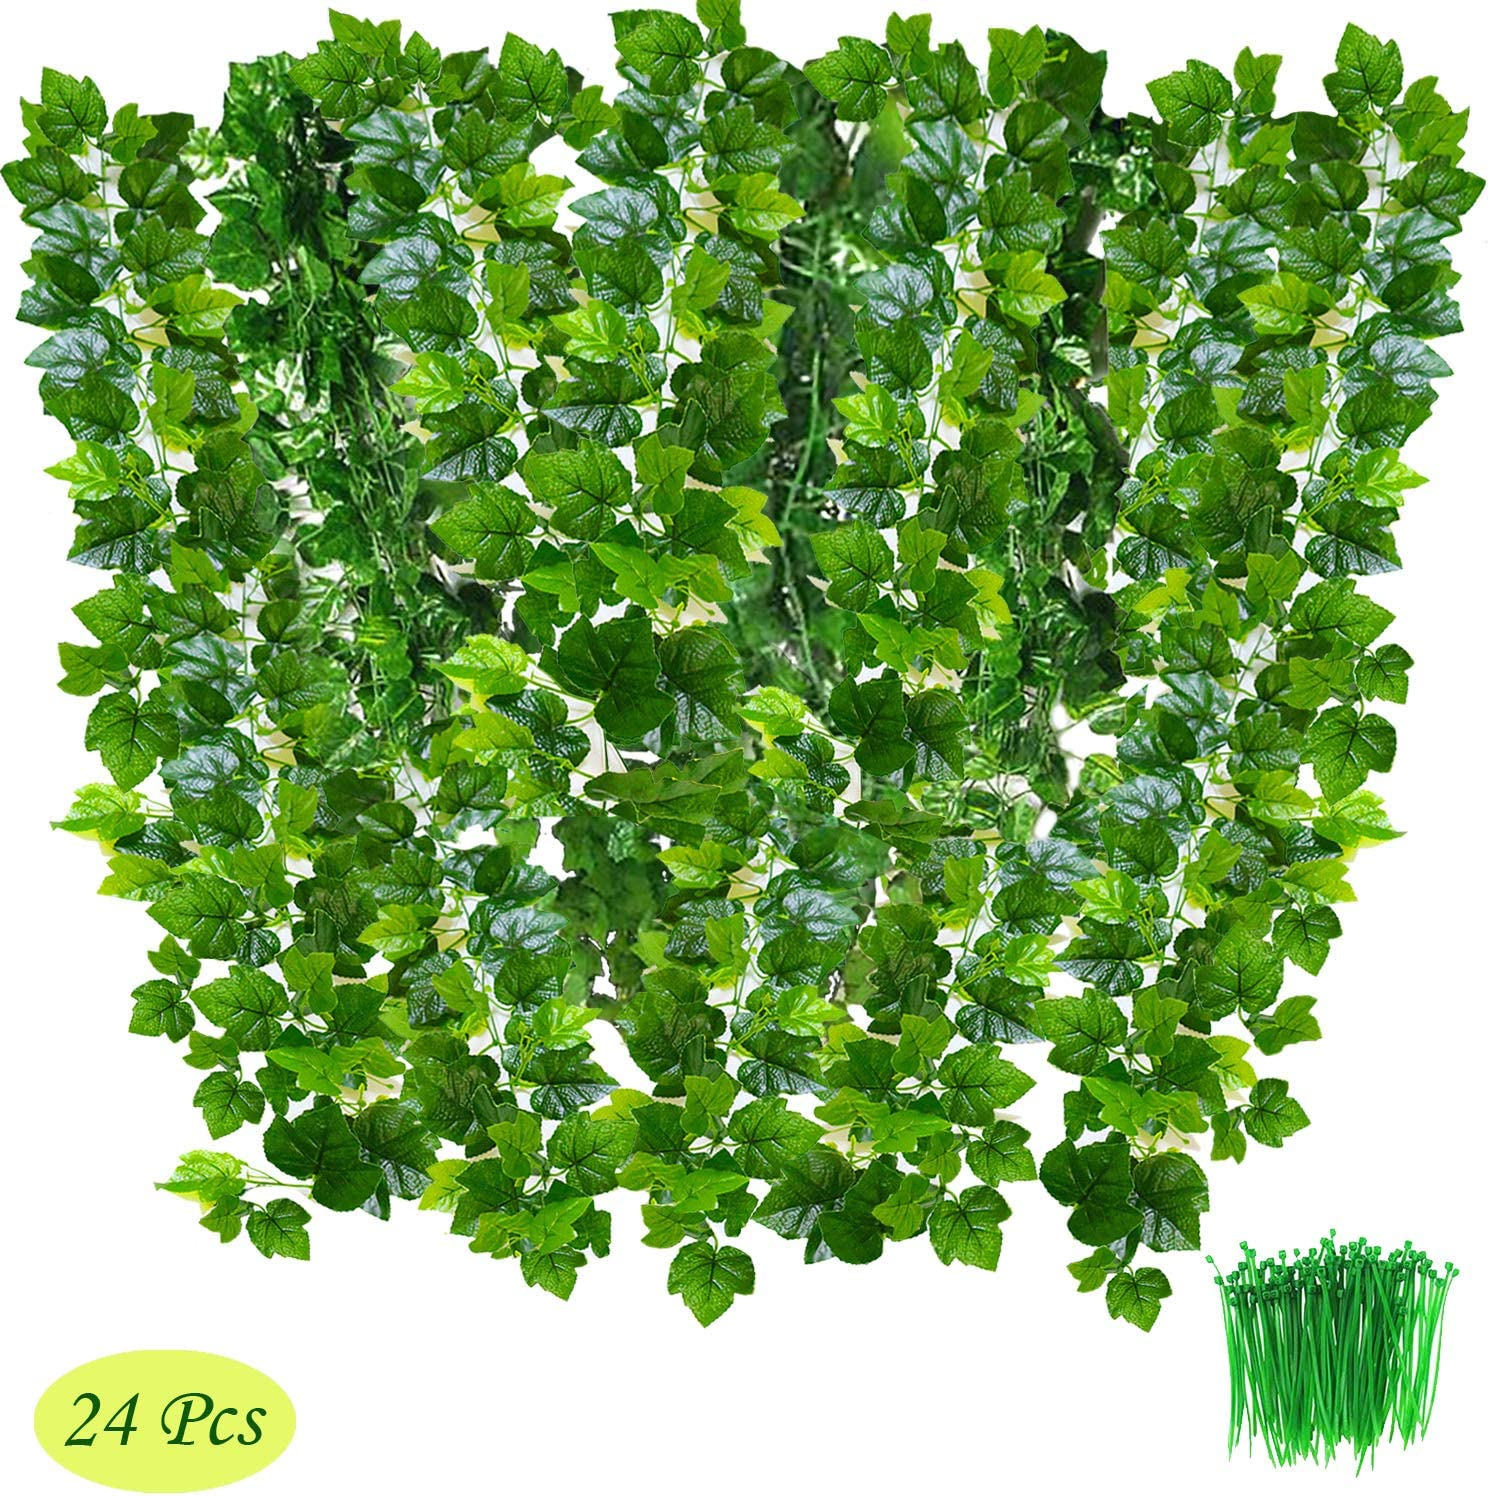 24Pack, 85 Each, 100Pcs Cable Tie Grape Leaves OrgMemory Grape Leaves, Greenery Garlands Hanging for Wedding Party Garden Decor